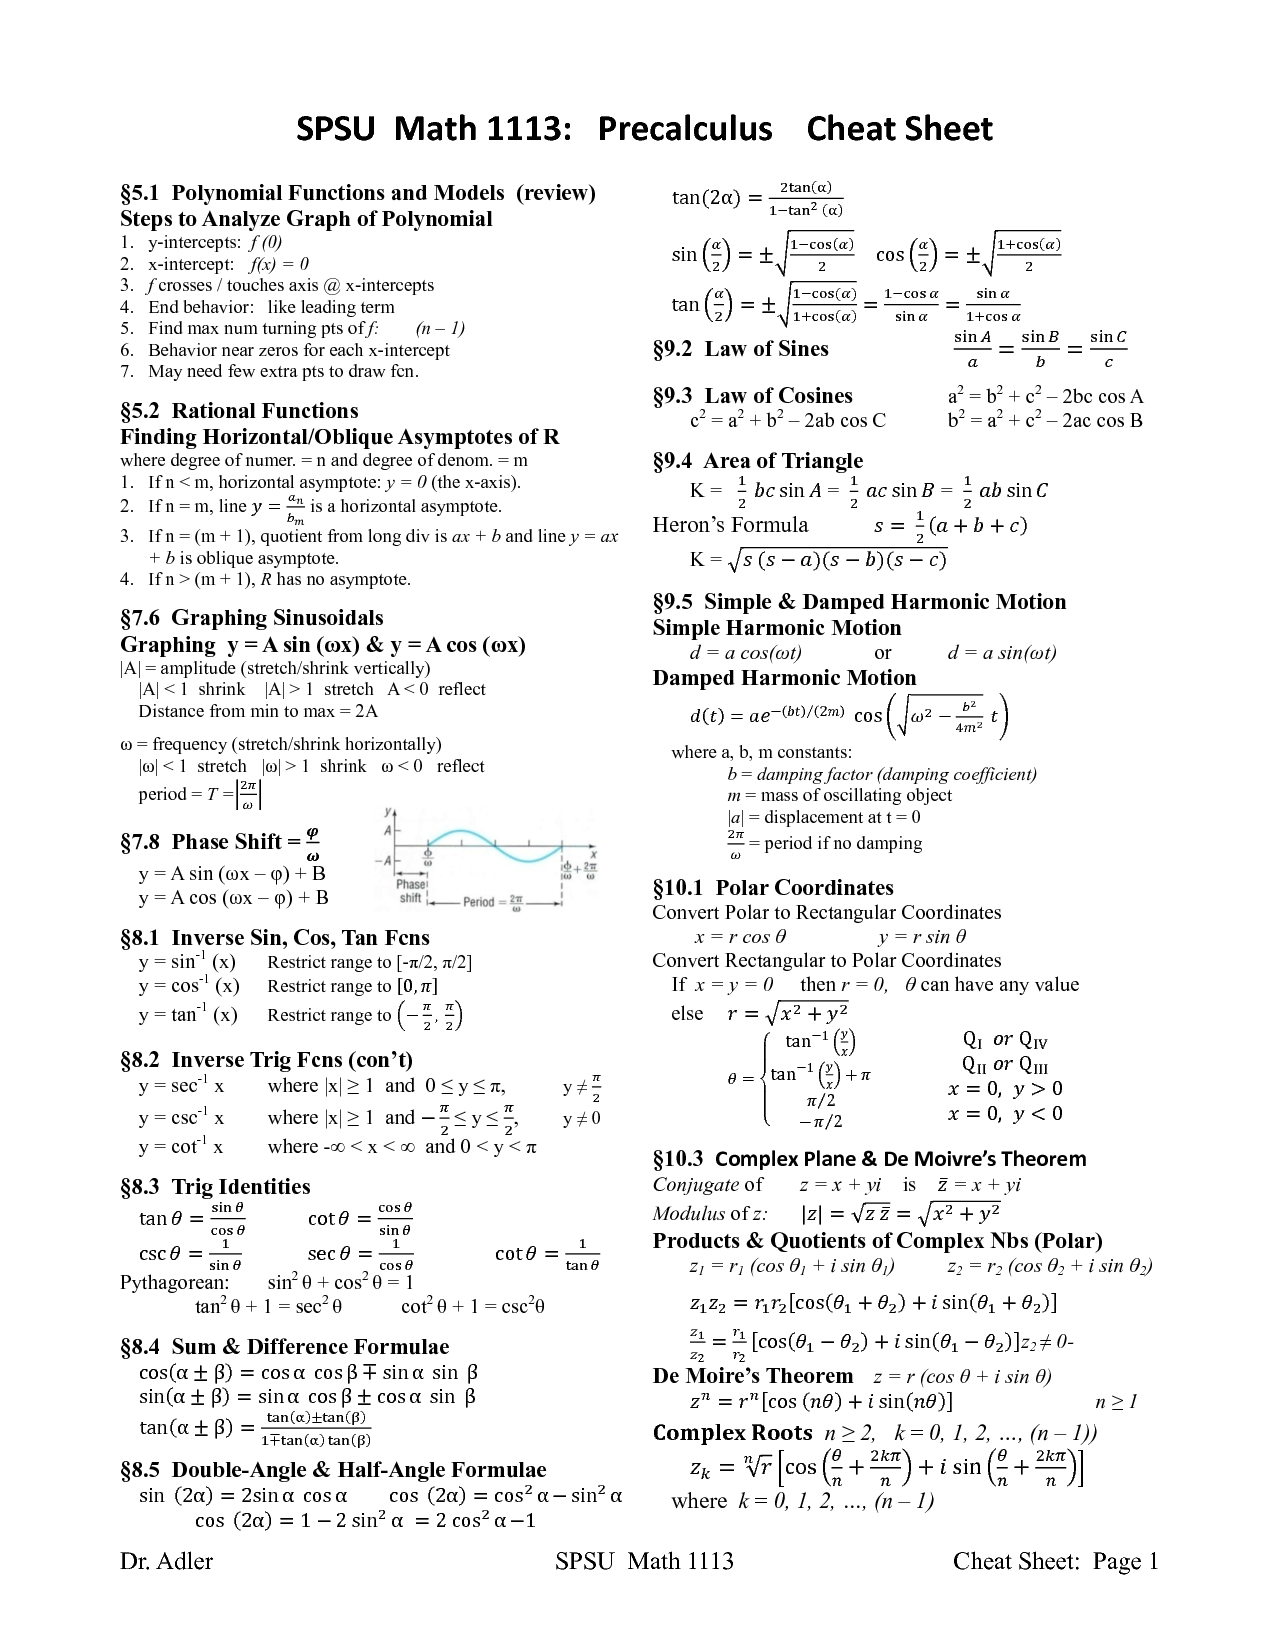 SPSU Math 1113 Precalculus Cheat Sheet - PDF - PDF